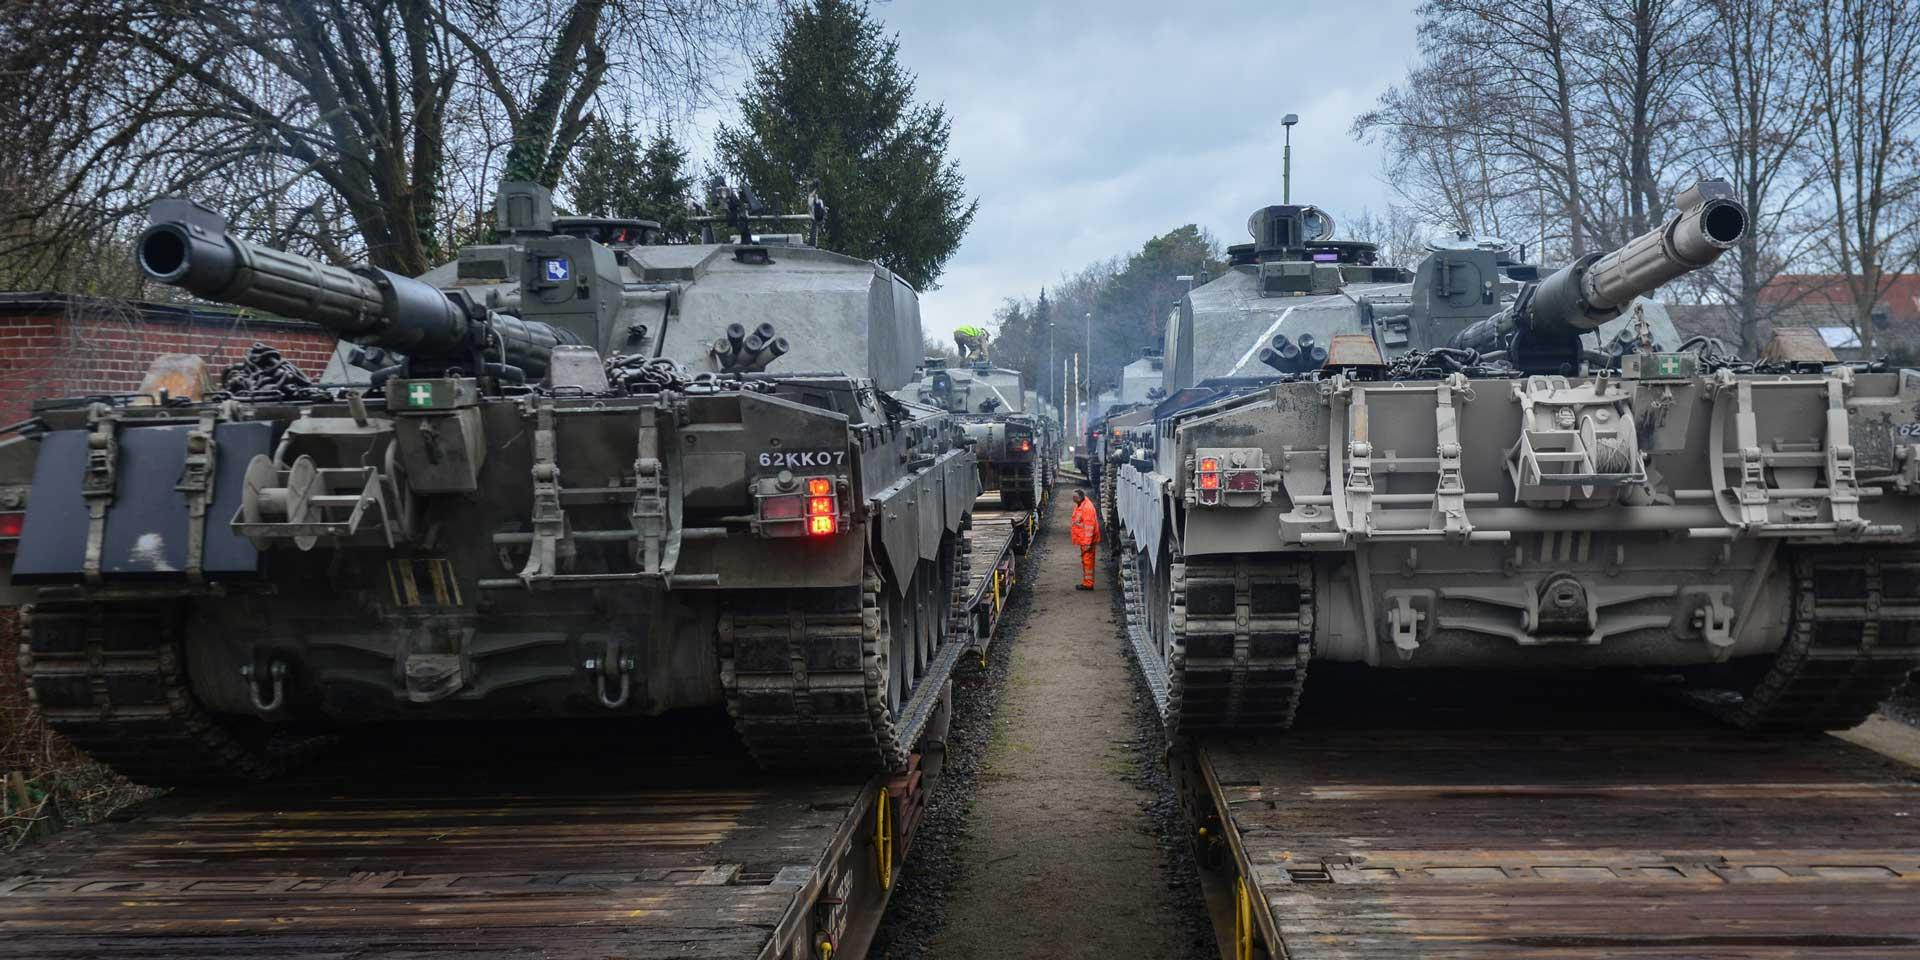 Challenger 2 tanks of The Queen's Royal Hussars loaded on trains at Sennelager, Germany, 2016